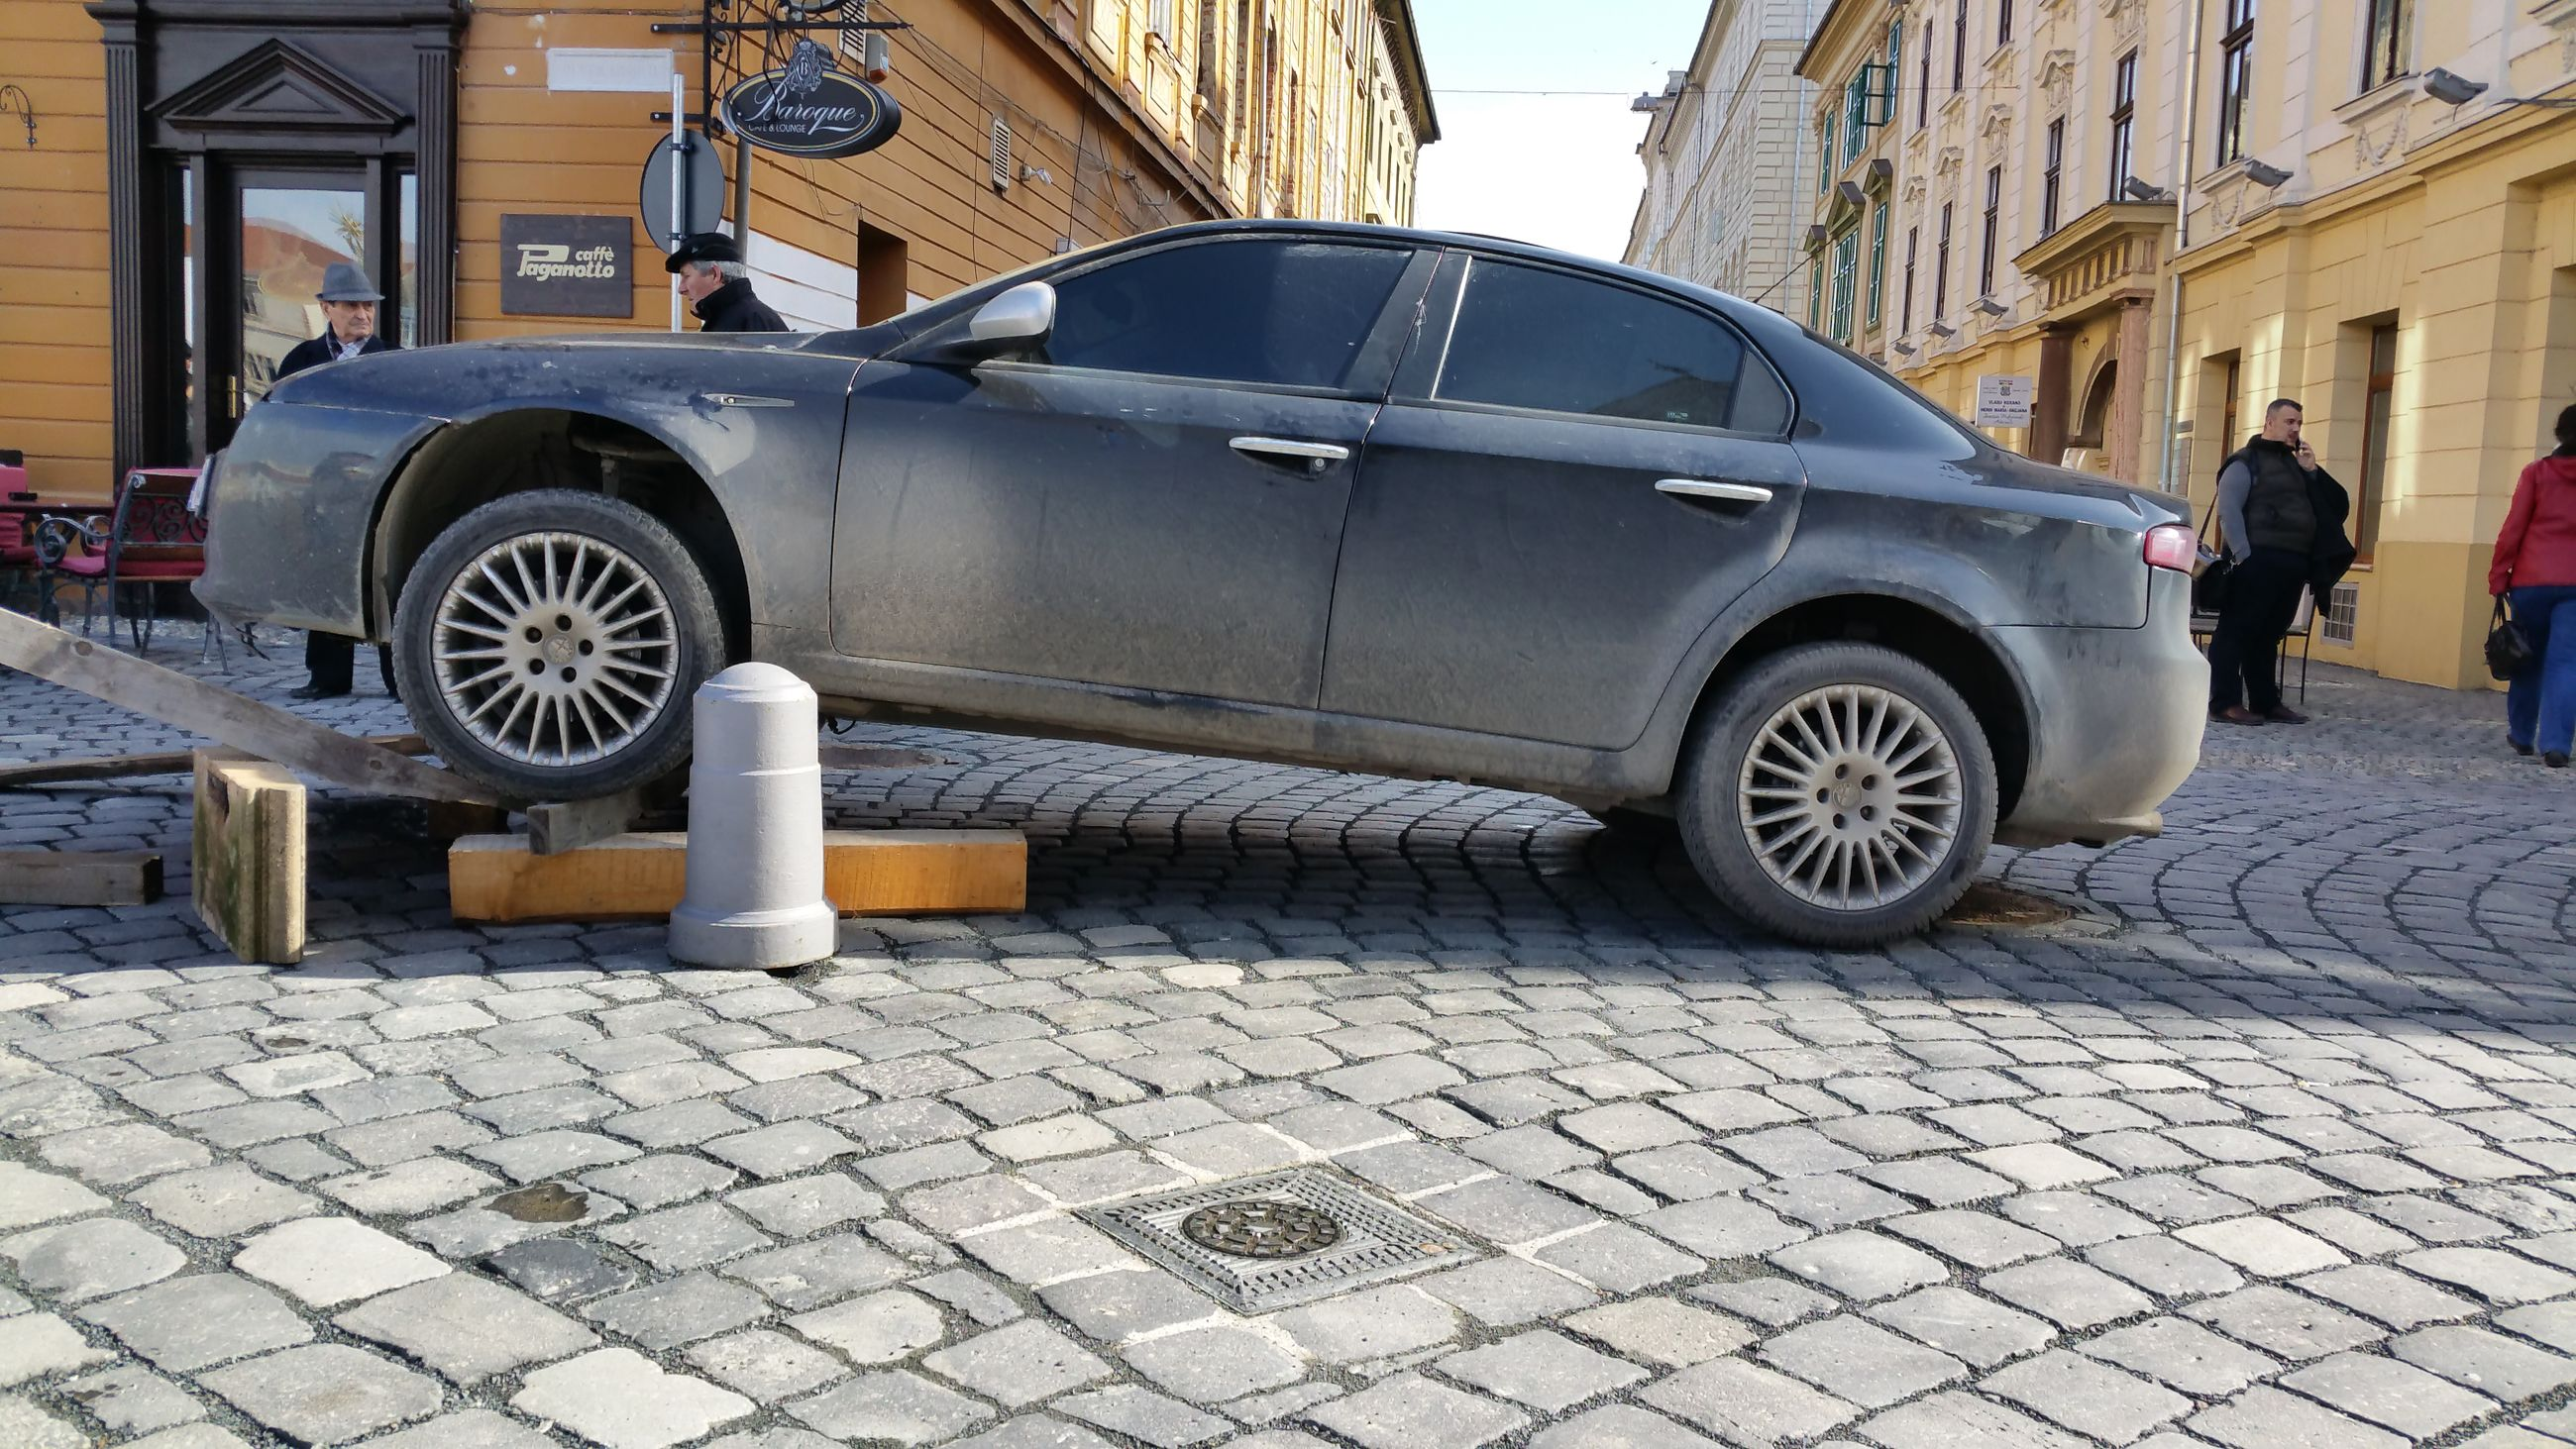 cobblestone, tire, car, outdoors, day, adult, people